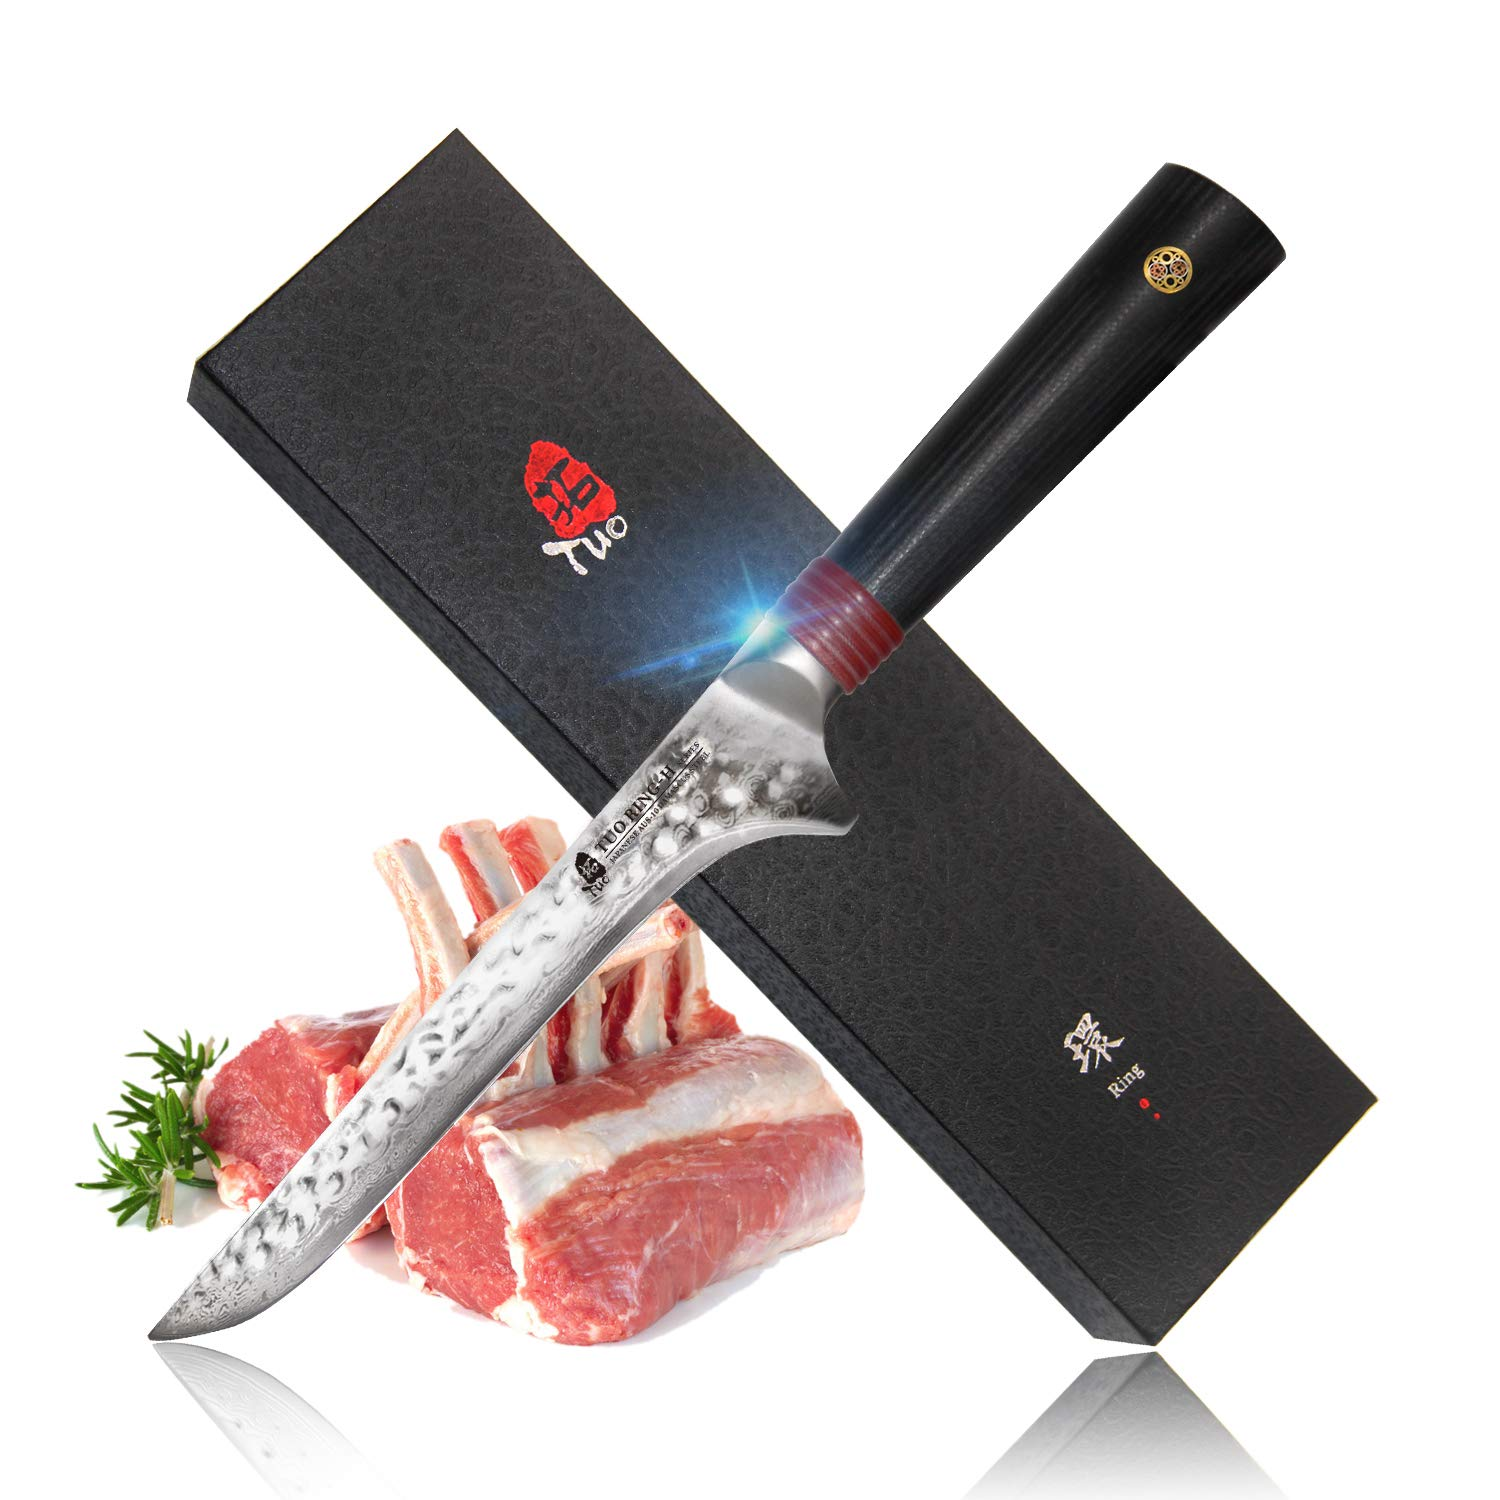 TUO Cutlery Boning Fillet Knife 6 Inch, Japanese AUS-10 High Carbon Rose Damascus Steel, Kitchen Knife With Ergonomic G10 Handle - Ring H Series